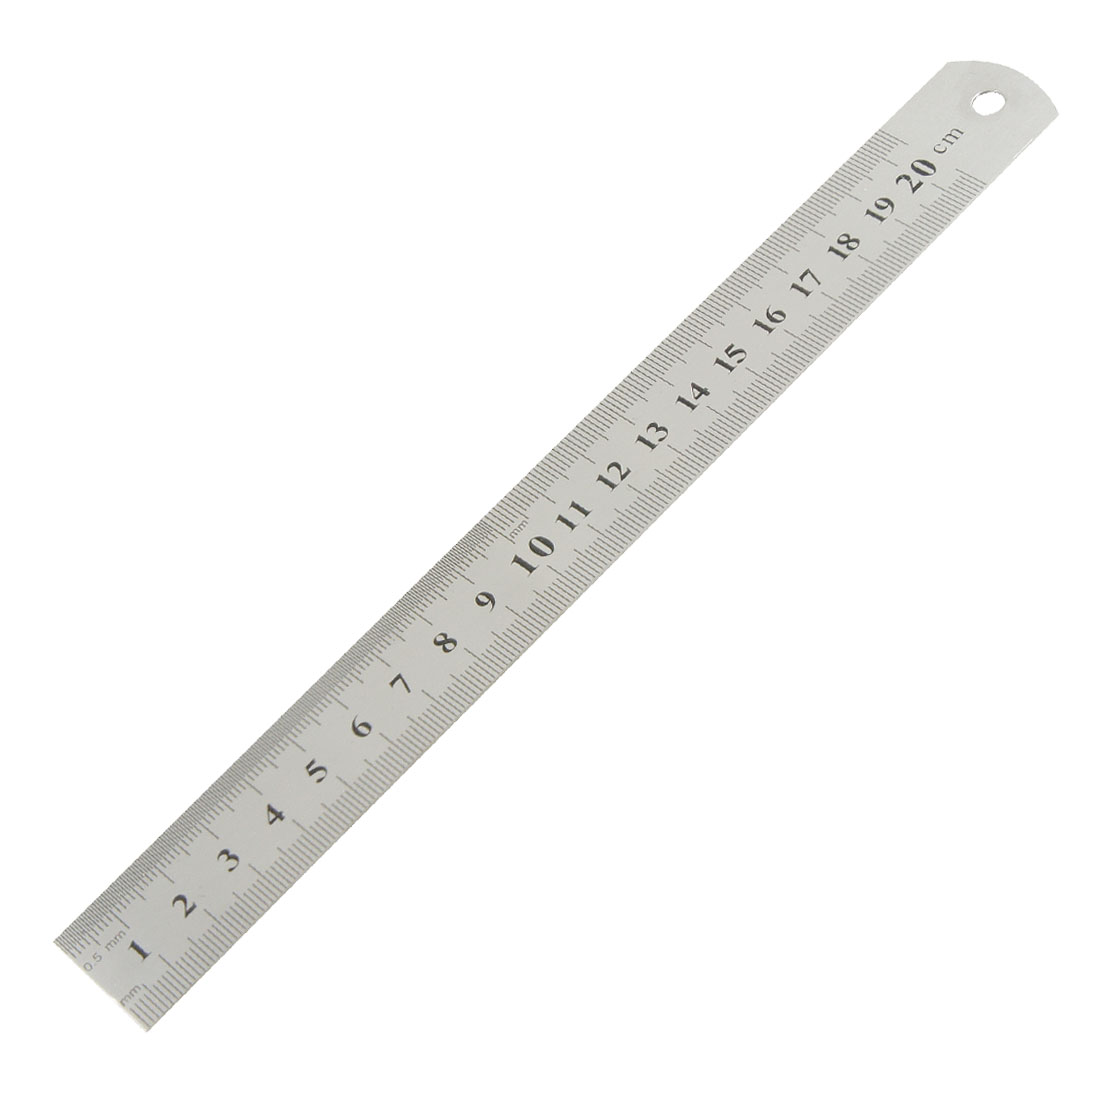 "20cm 8"" Double Side Measurement Tool Long Straight Ruler for Handworking"